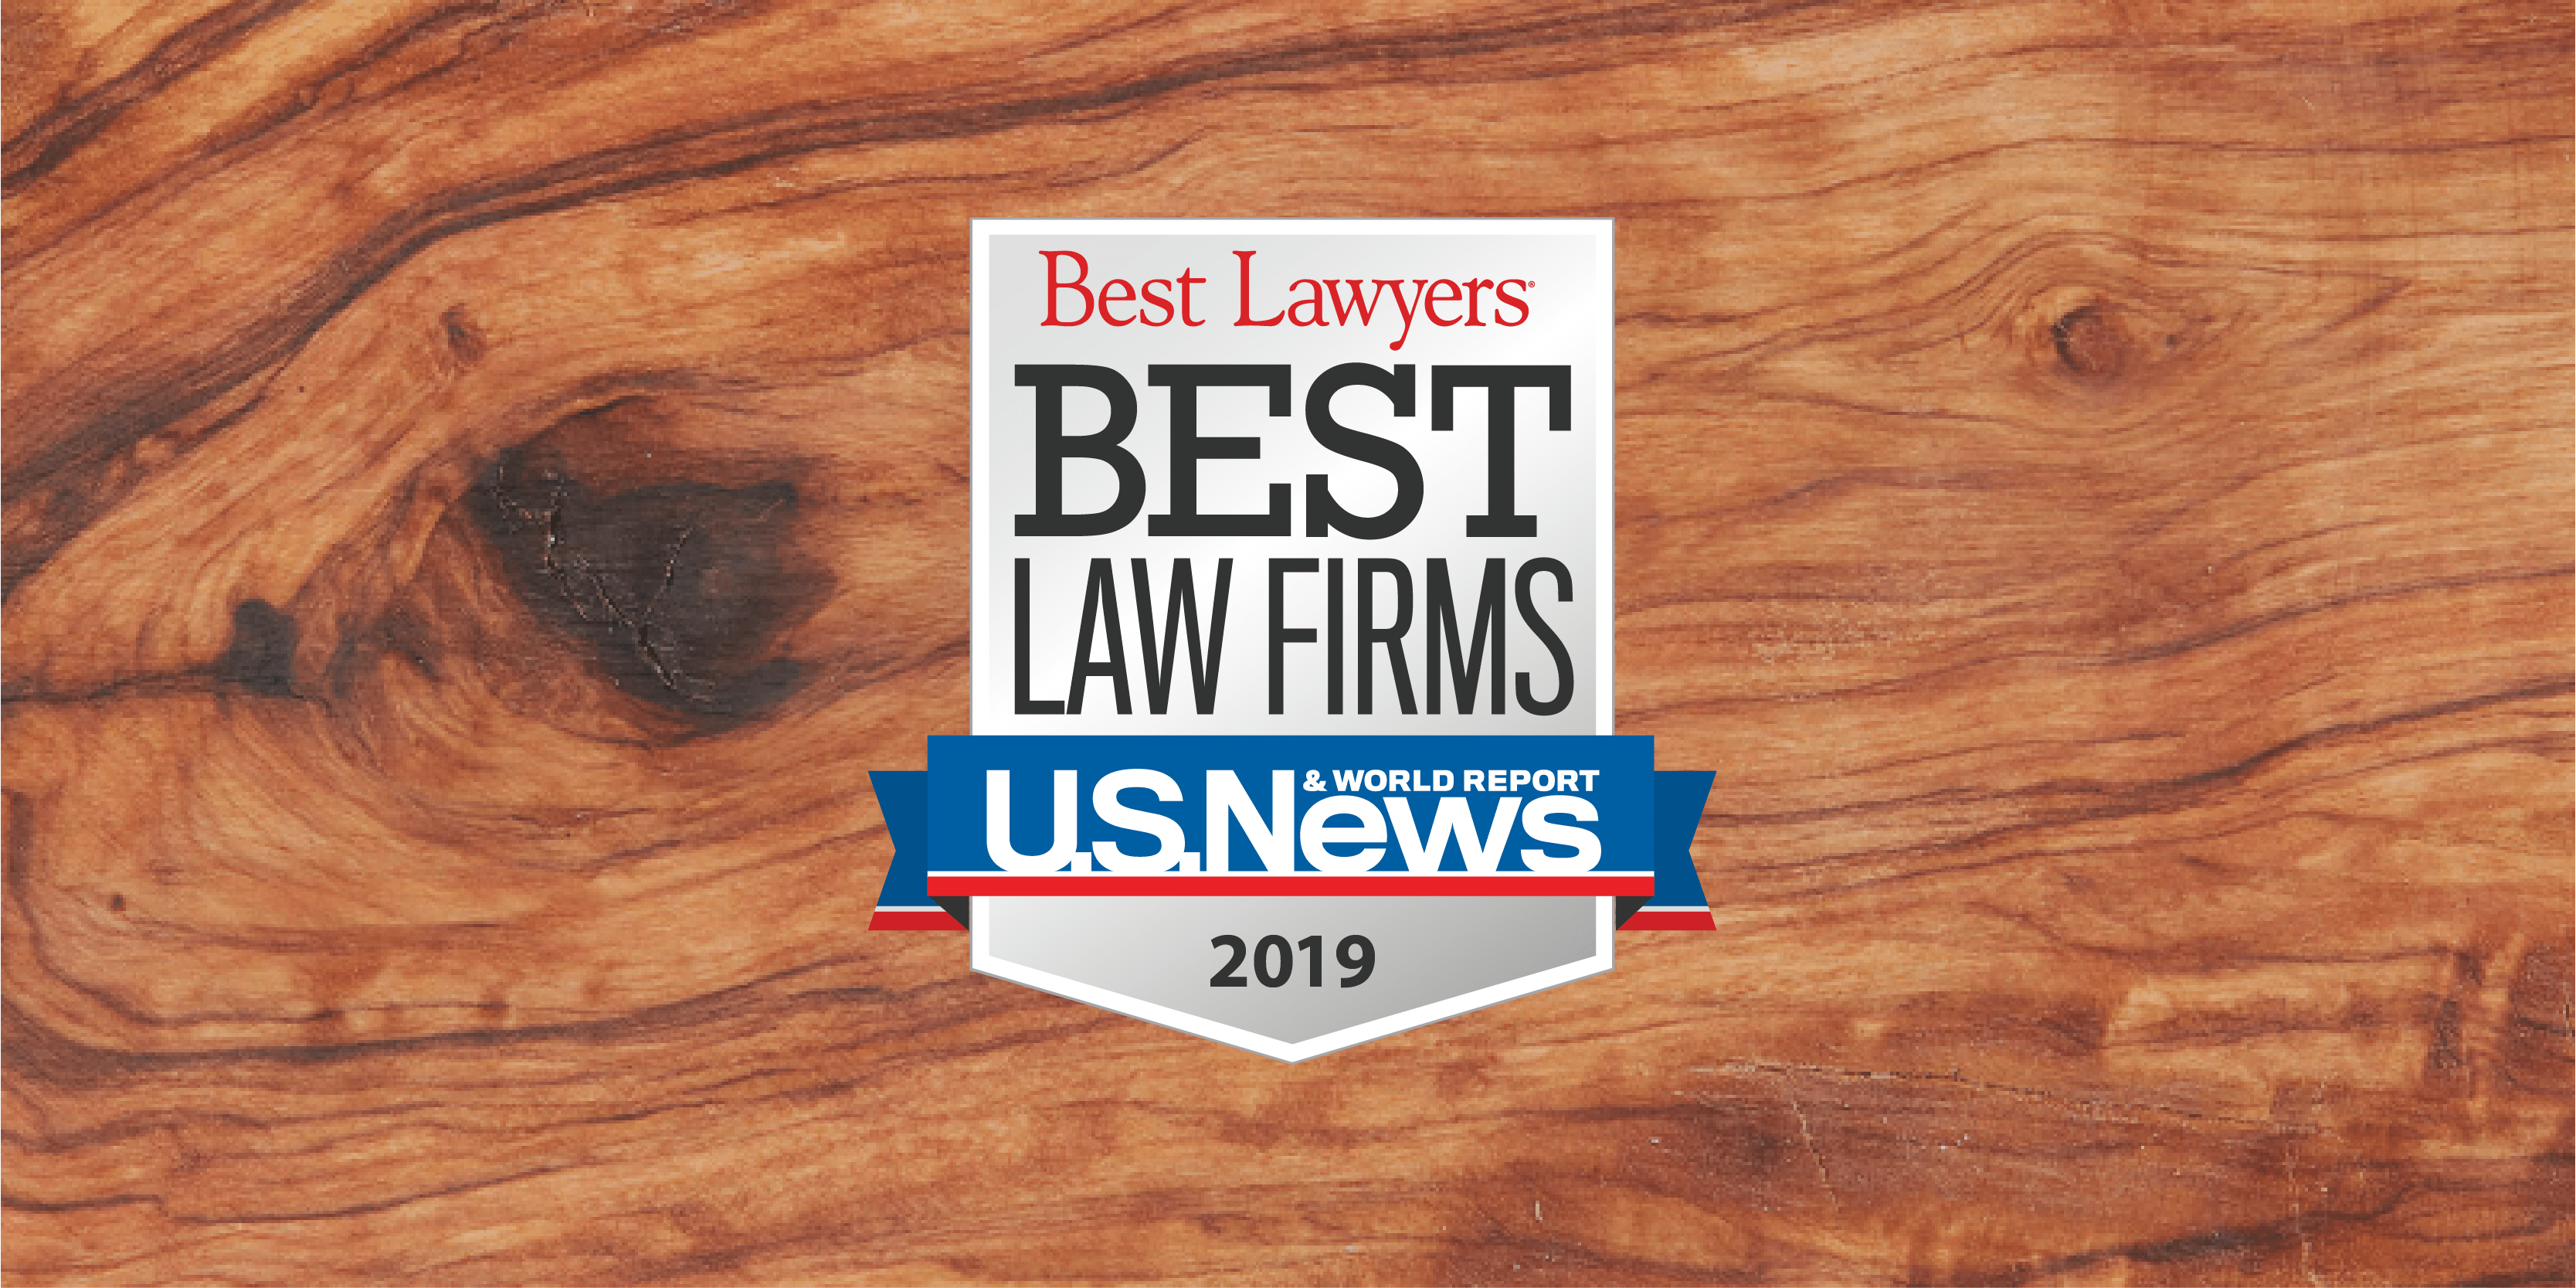 U.S. News \'Best Law Firms\' 2019 Recognizes Minami Tamaki\'s.